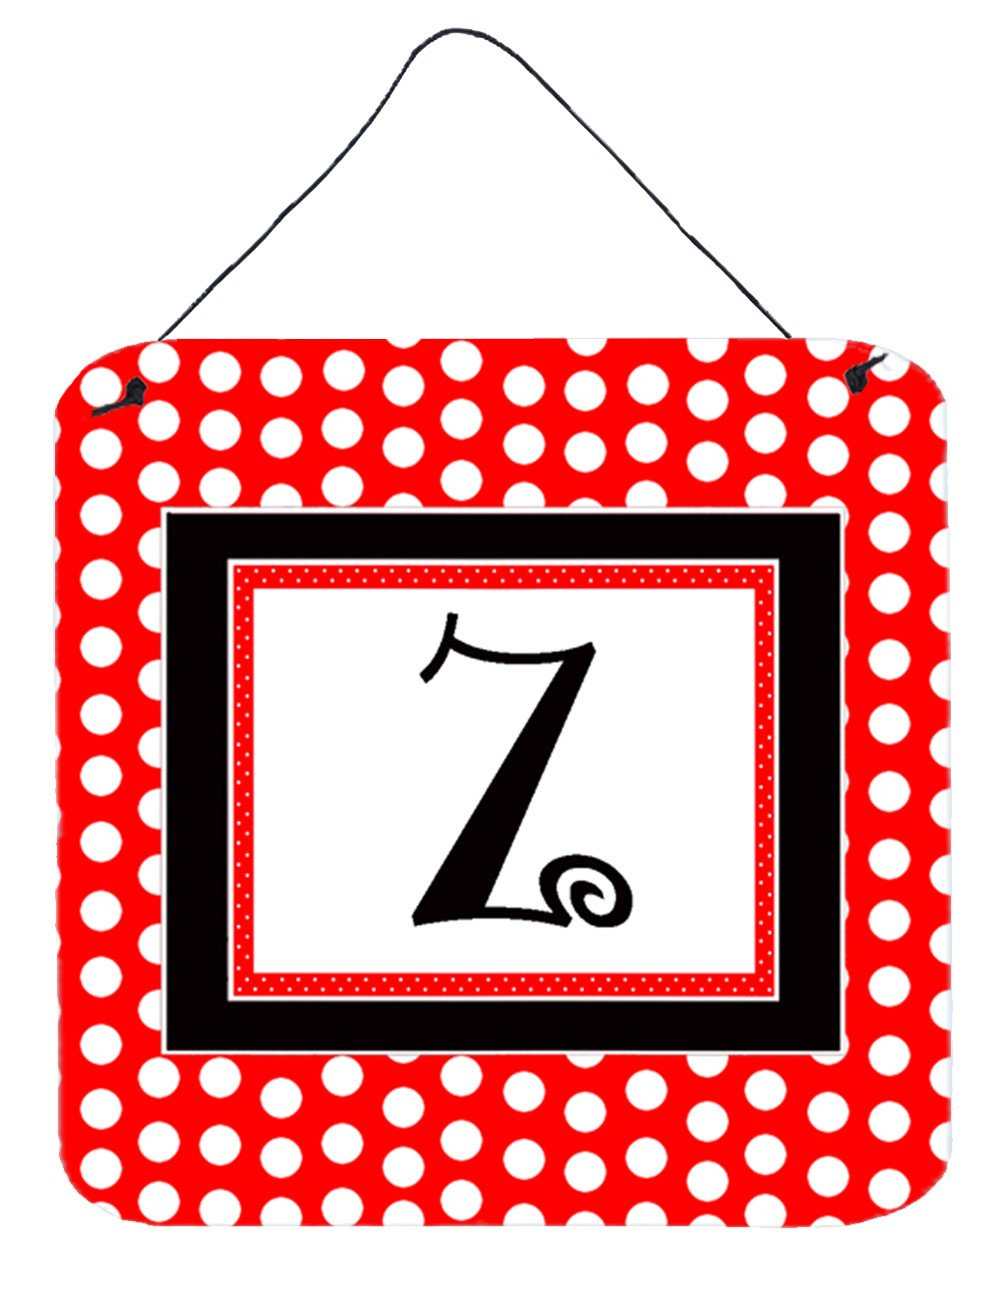 Letter Z Initial  - Red Black Polka Dots Wall or Door Hanging Prints by Caroline's Treasures